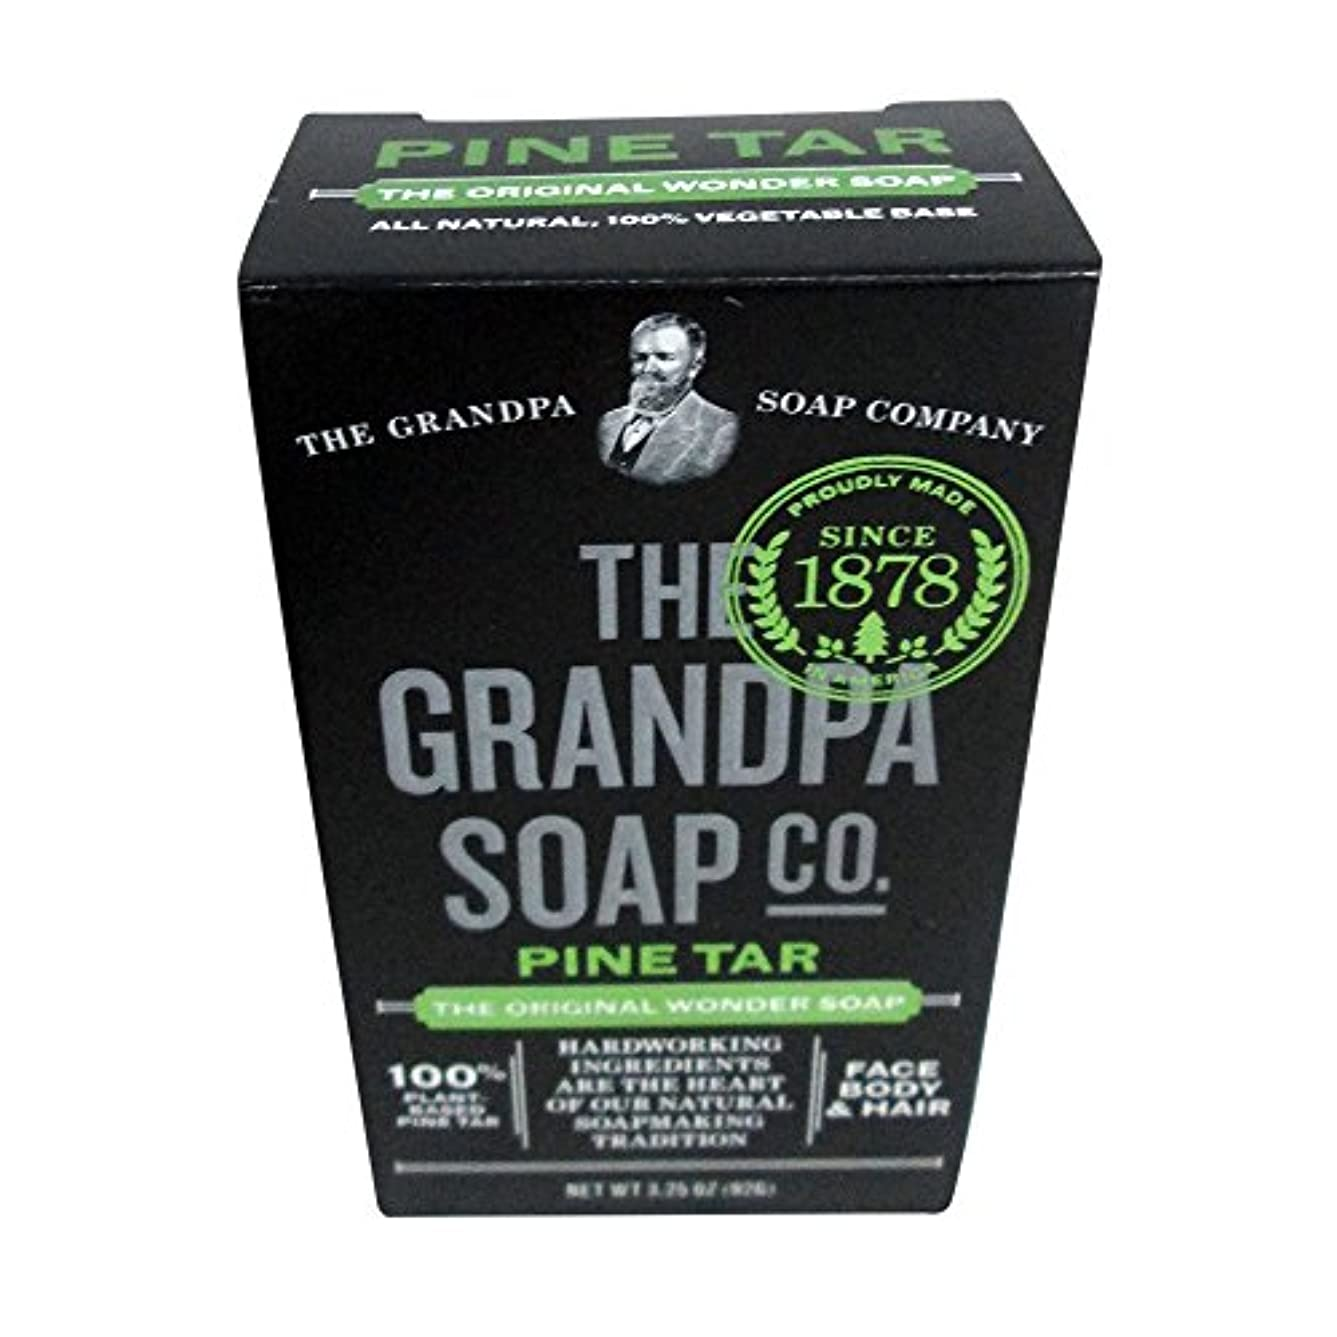 悪性腫瘍フォーラム認識Pine Tar Soap - 3.25 oz Bar (6 Pack) by Grandpa's